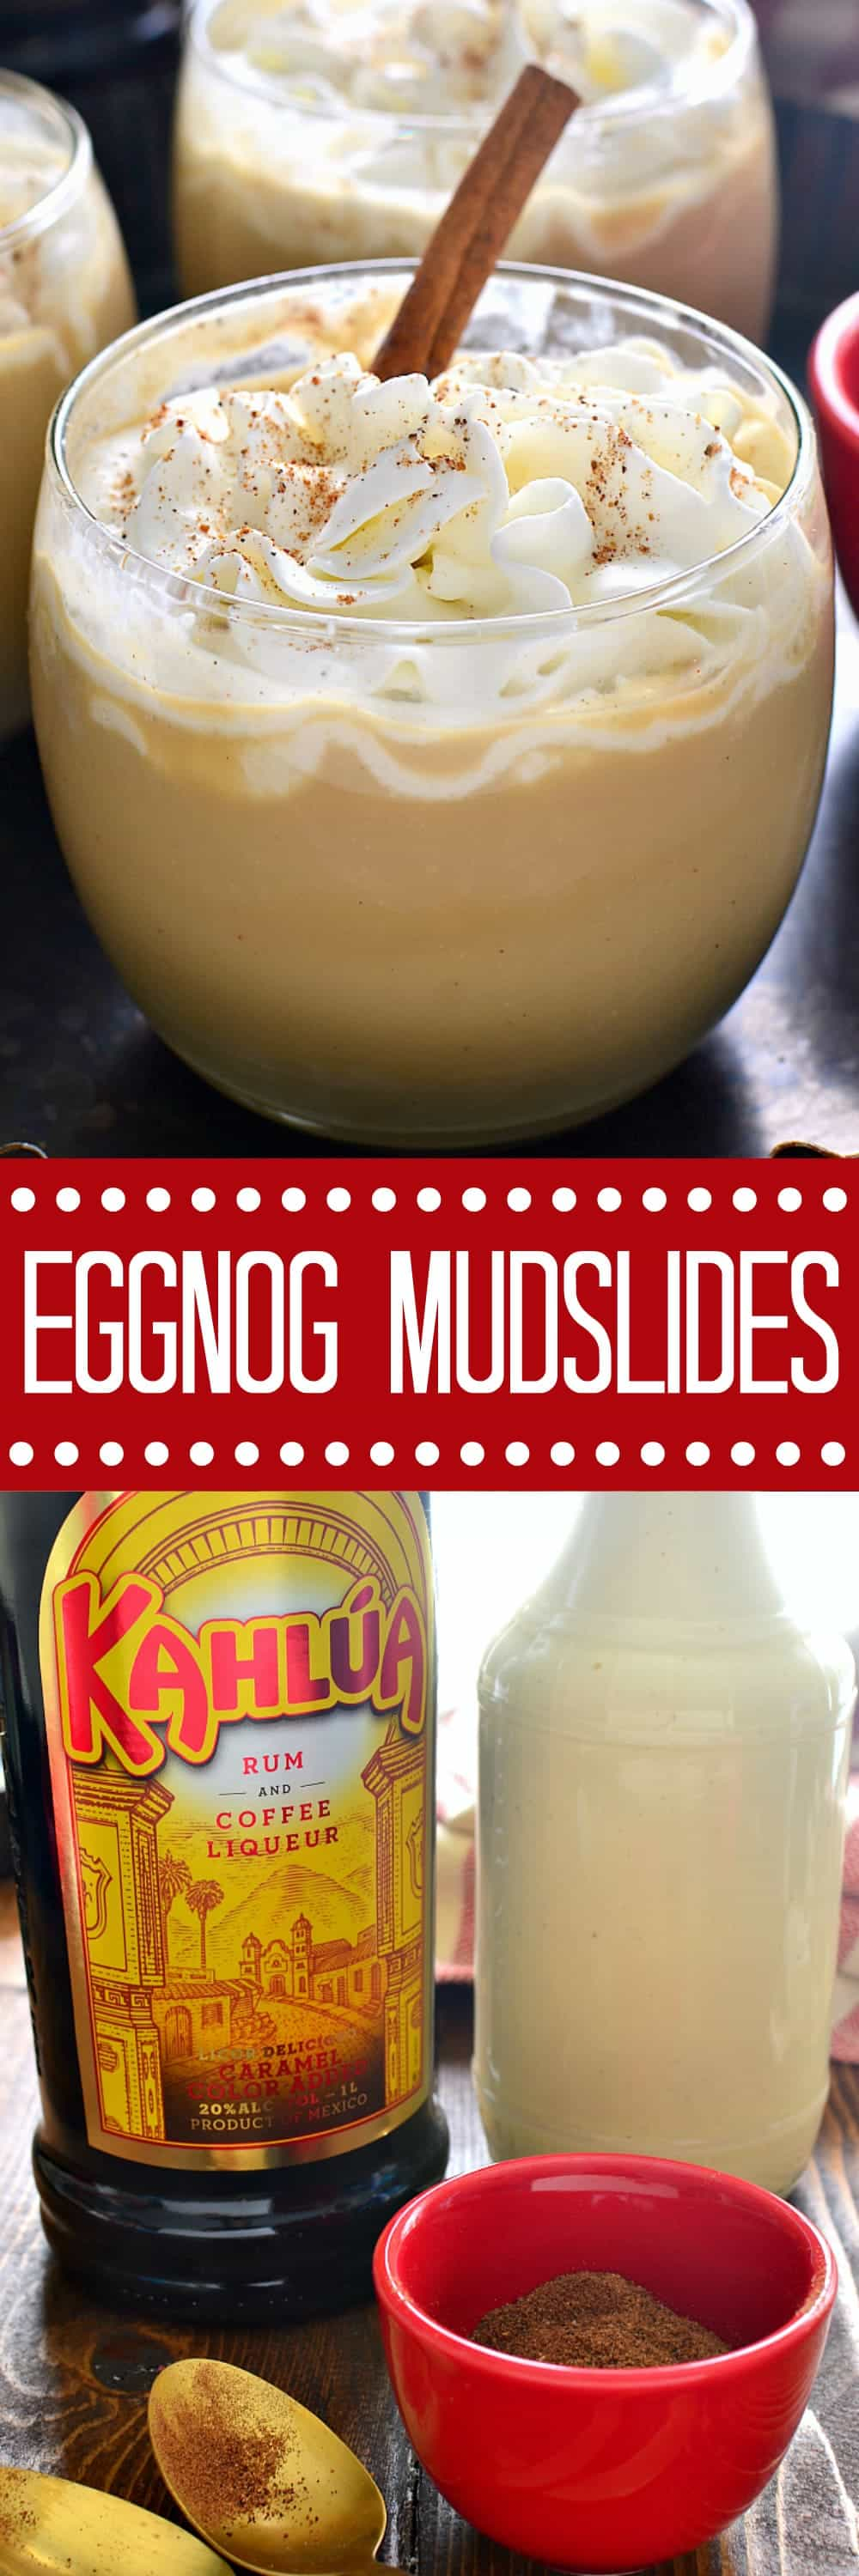 Eggnog Mudslides are a delicious holiday twist on a classic cocktail! The perfect addition to all your holiday celebrations!